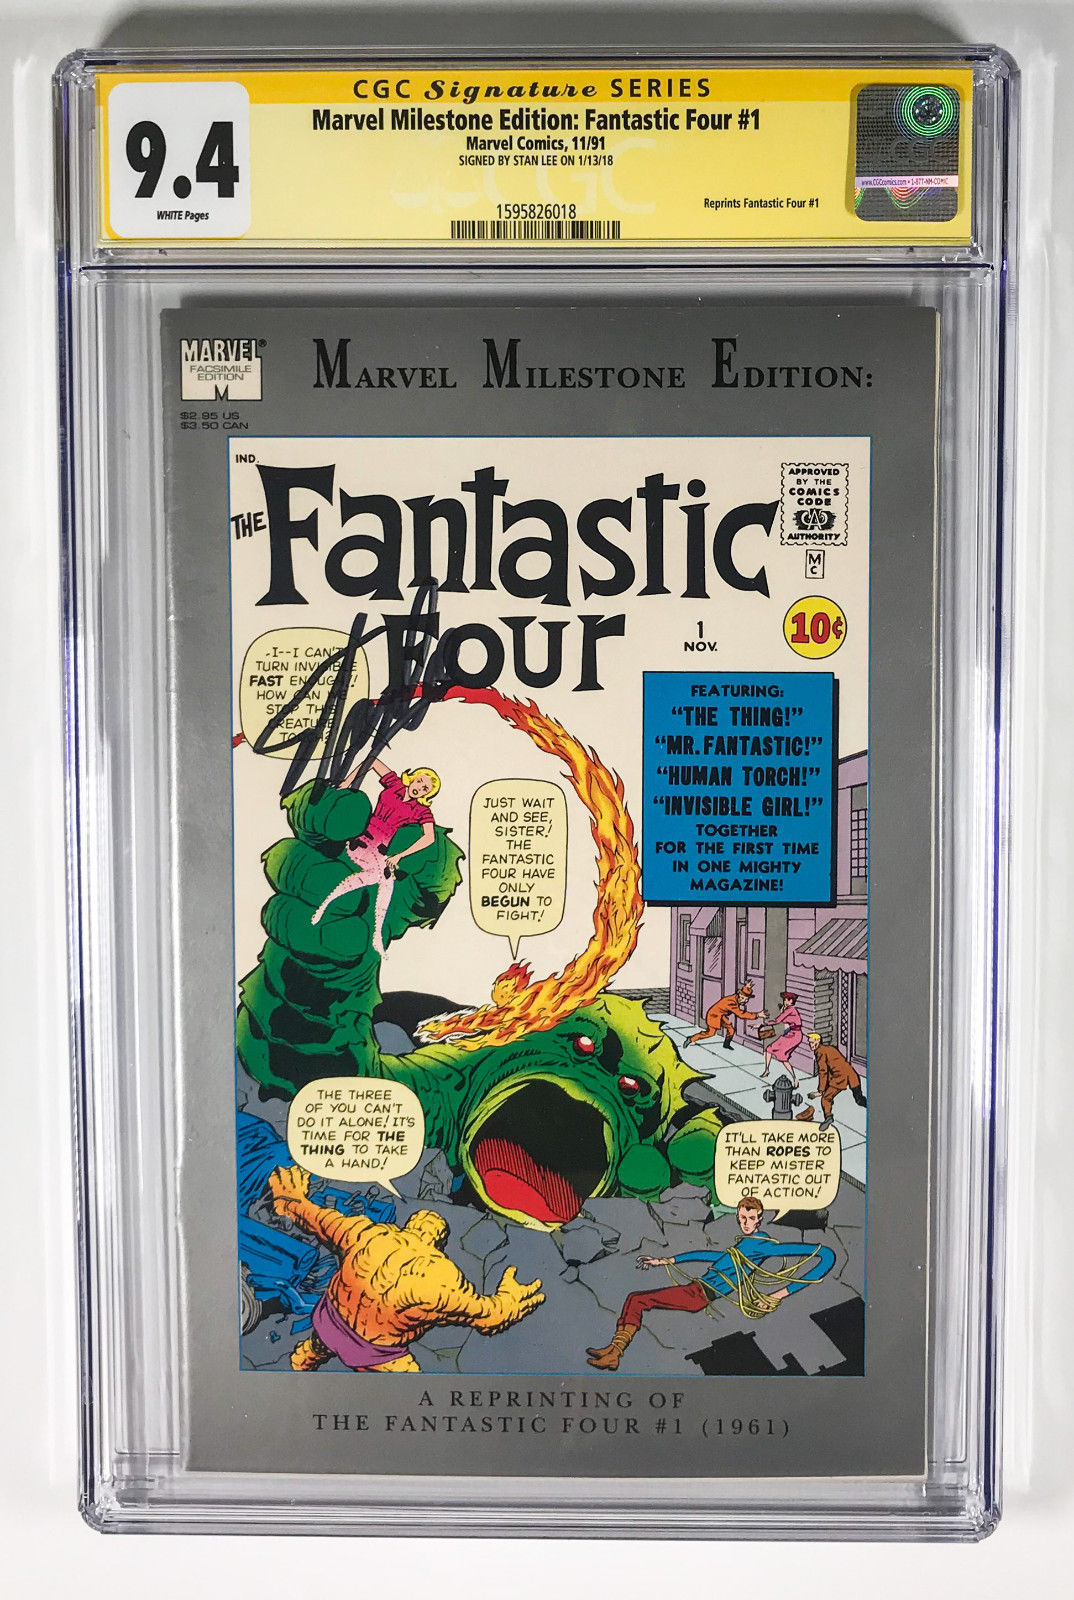 Marvel Milestone Edition Fantastic Four 1 CGC 9.4 signed by Stan Lee reprint key